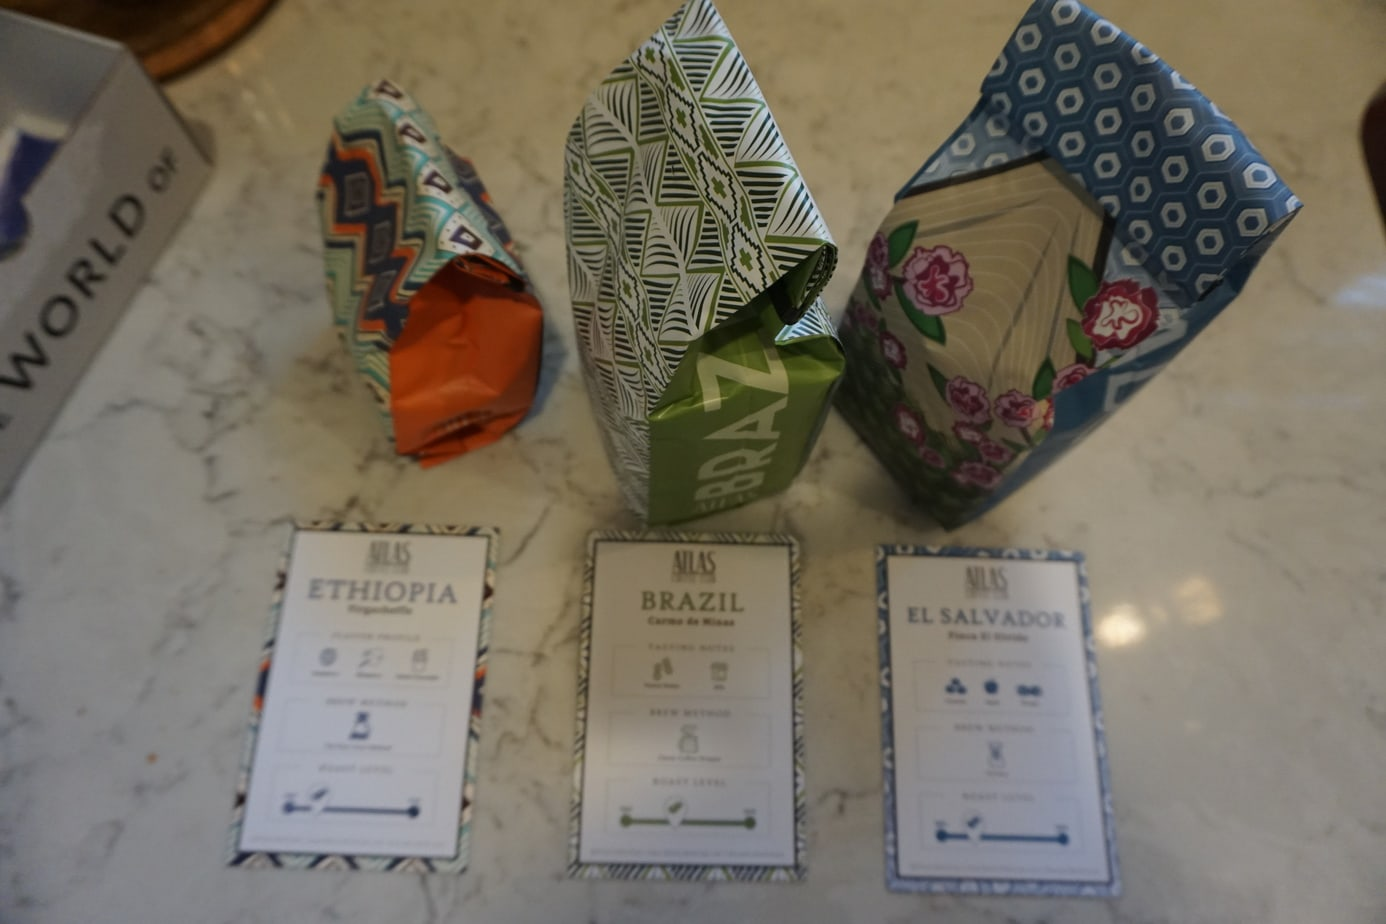 Atlas Coffee Club - 3 bags